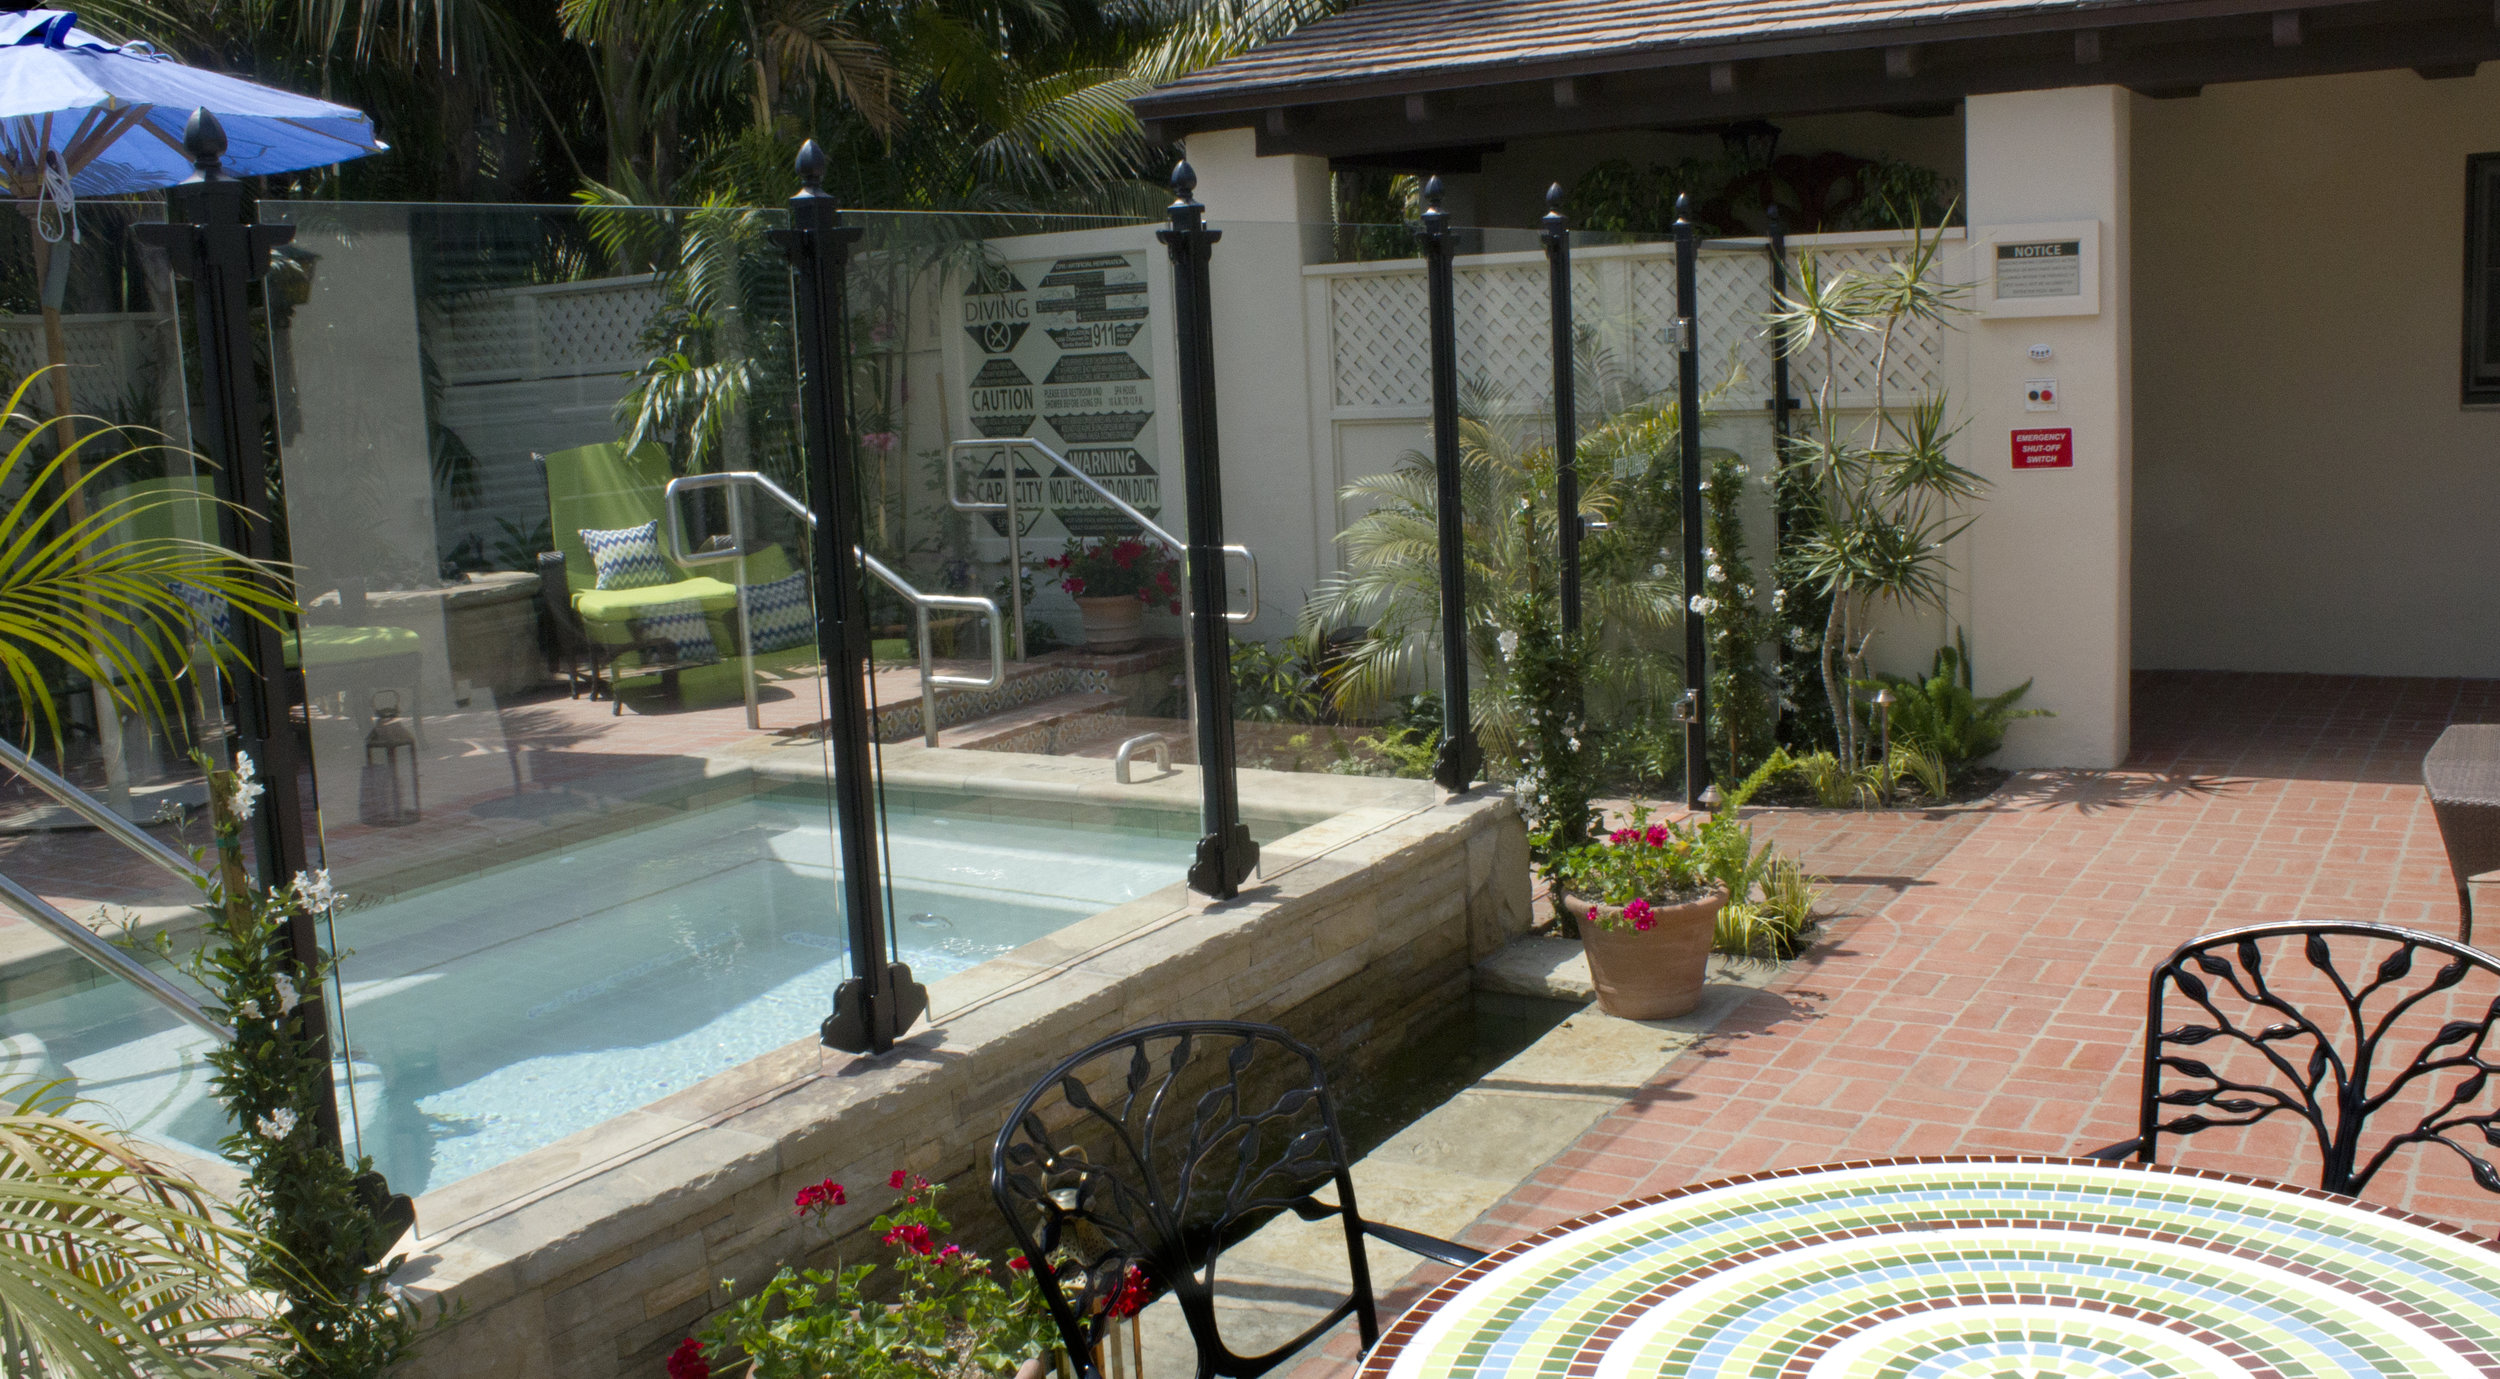 Recently completed spas for a local resort, creating private patio spaces.